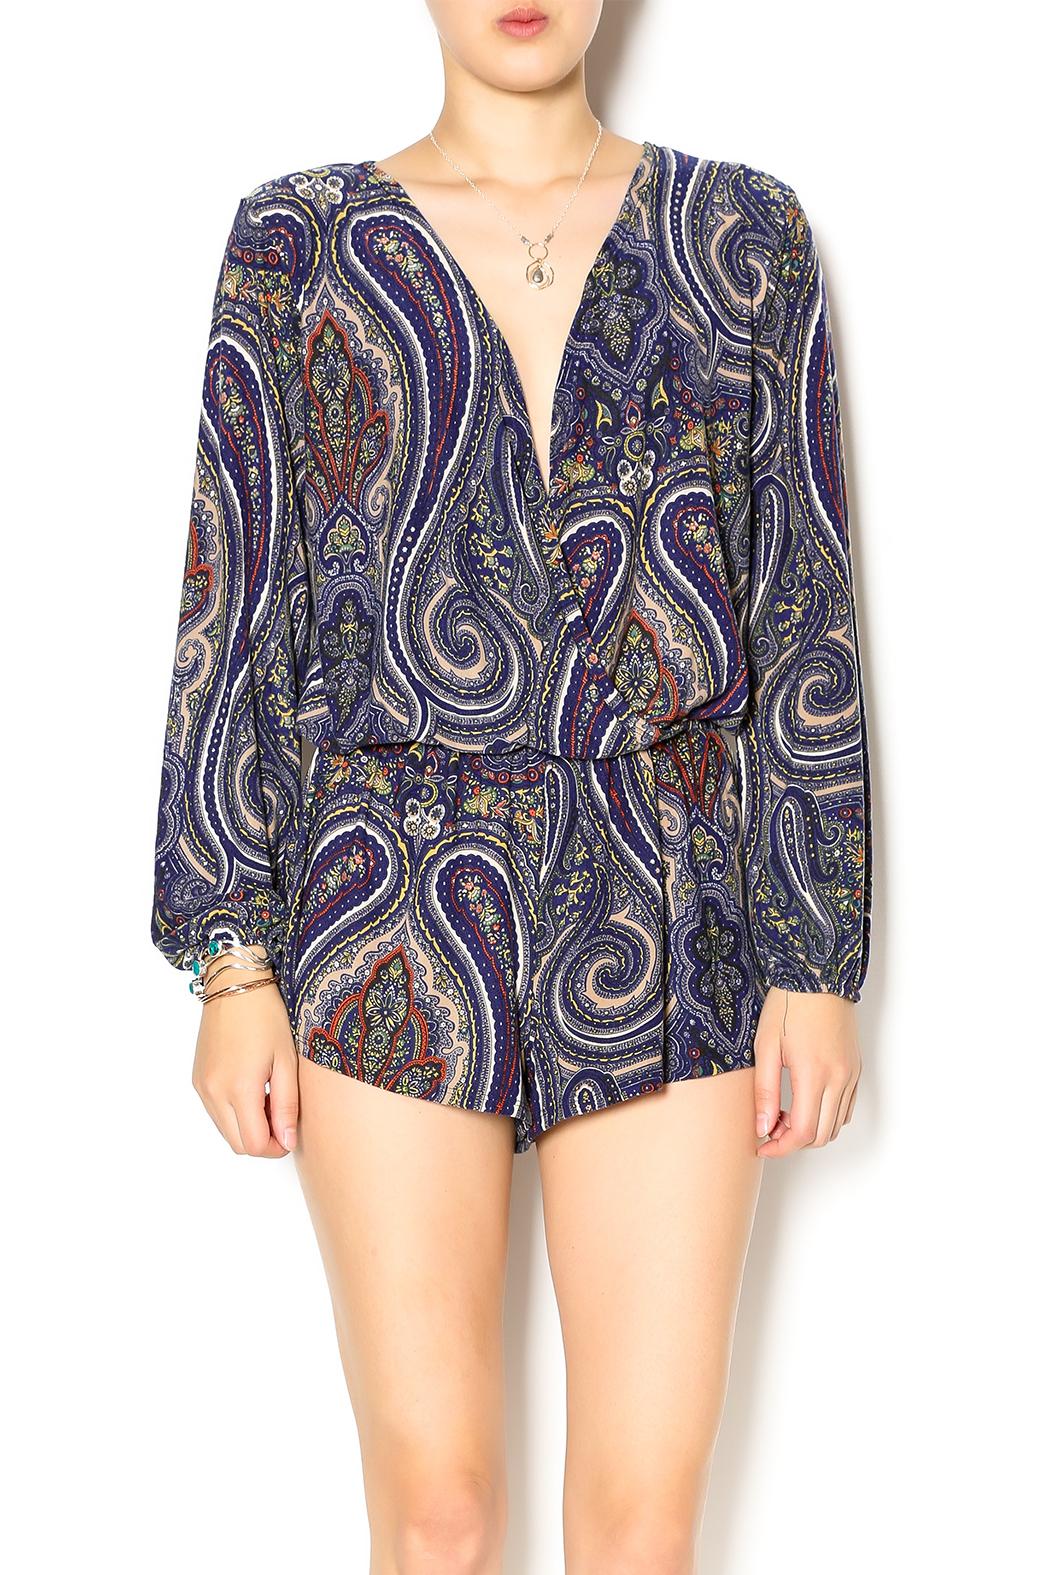 d0ba55d02cff Vintage Havana Paisley Print Romper from Texas by POE and Arrows ...